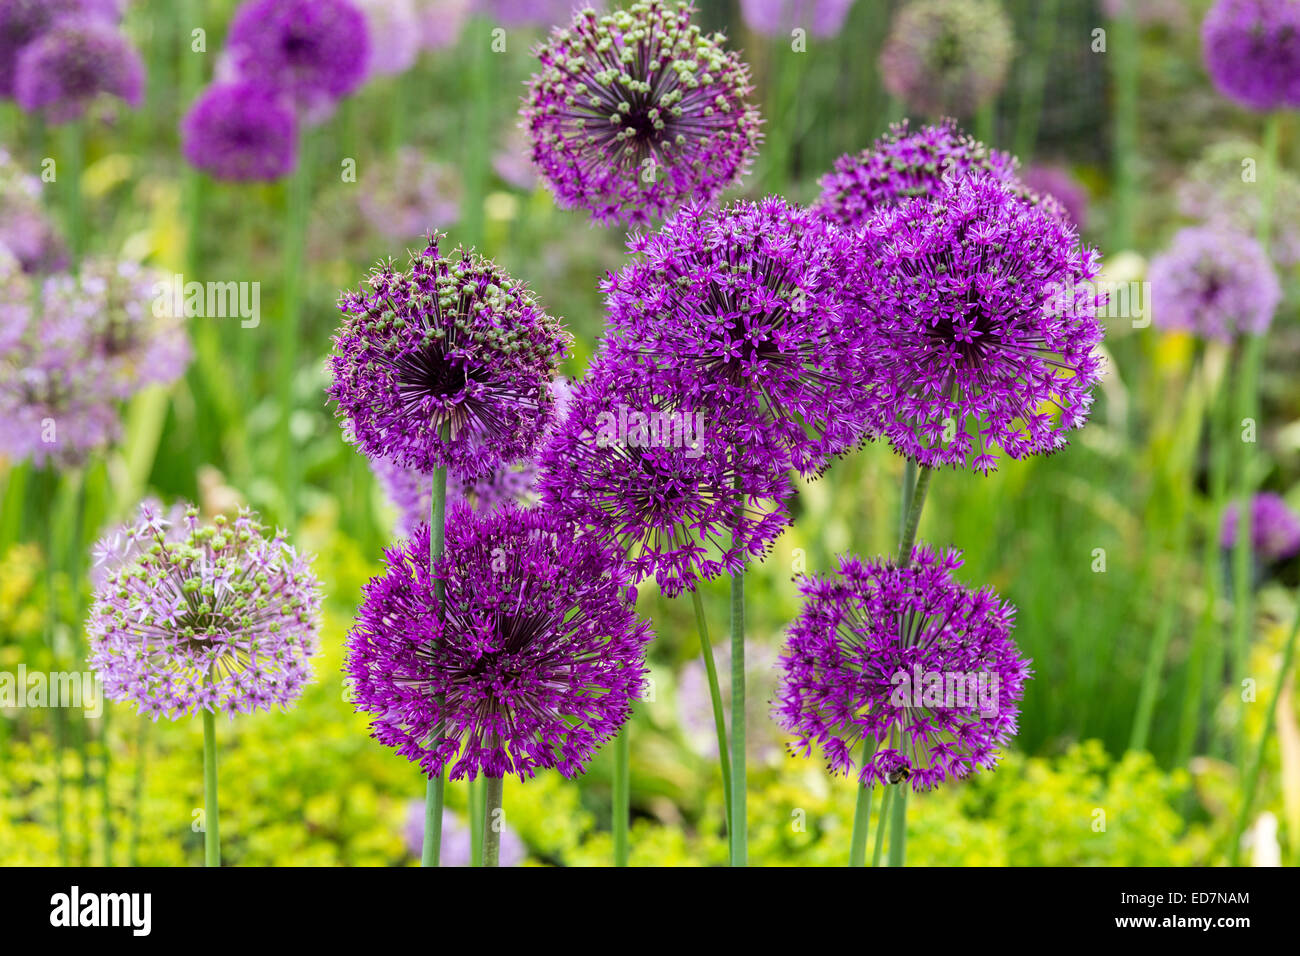 Alliums making a colourful display in early Summer, 2014 - Stock Image